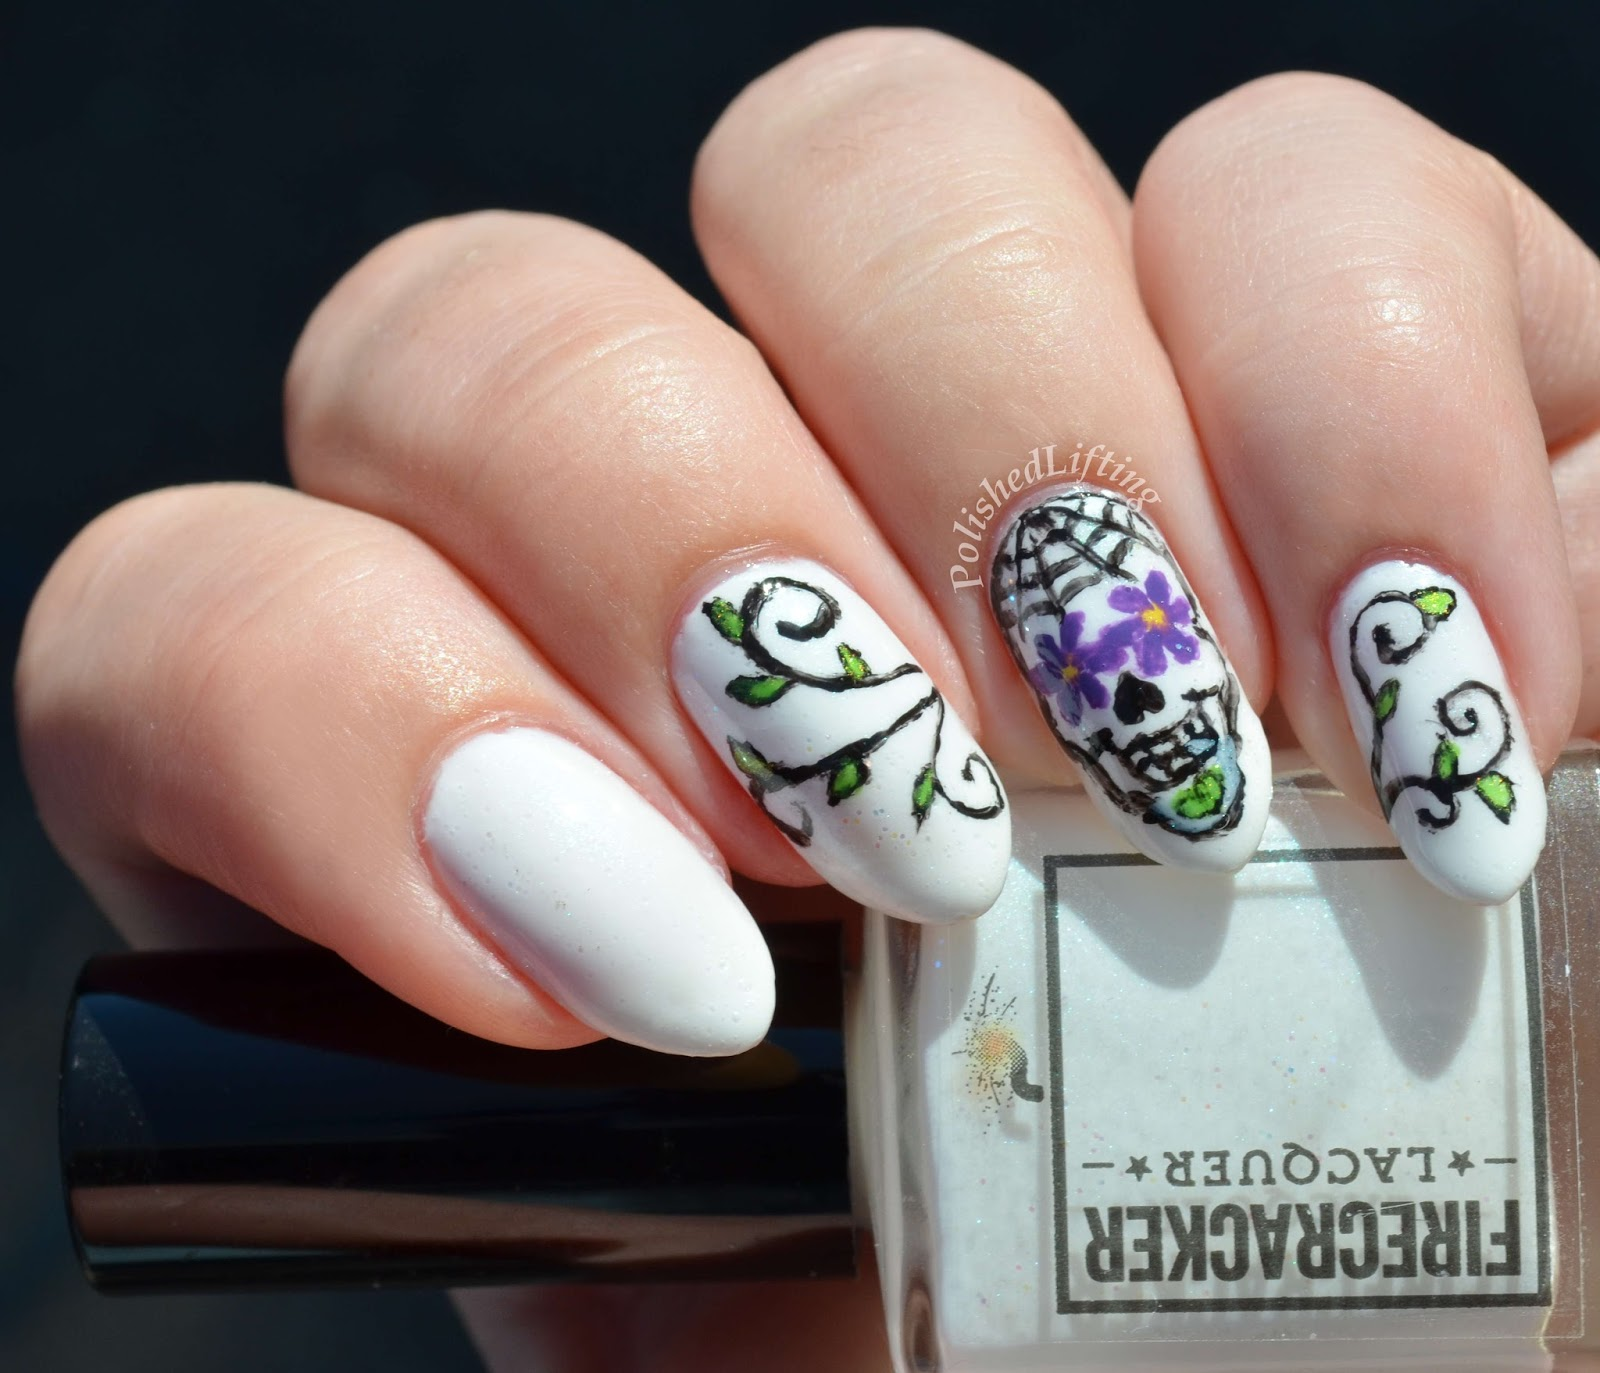 Firecracker Lacquer Unexpected Chill, Sugar Skull, calavera, nail art, sinful colors